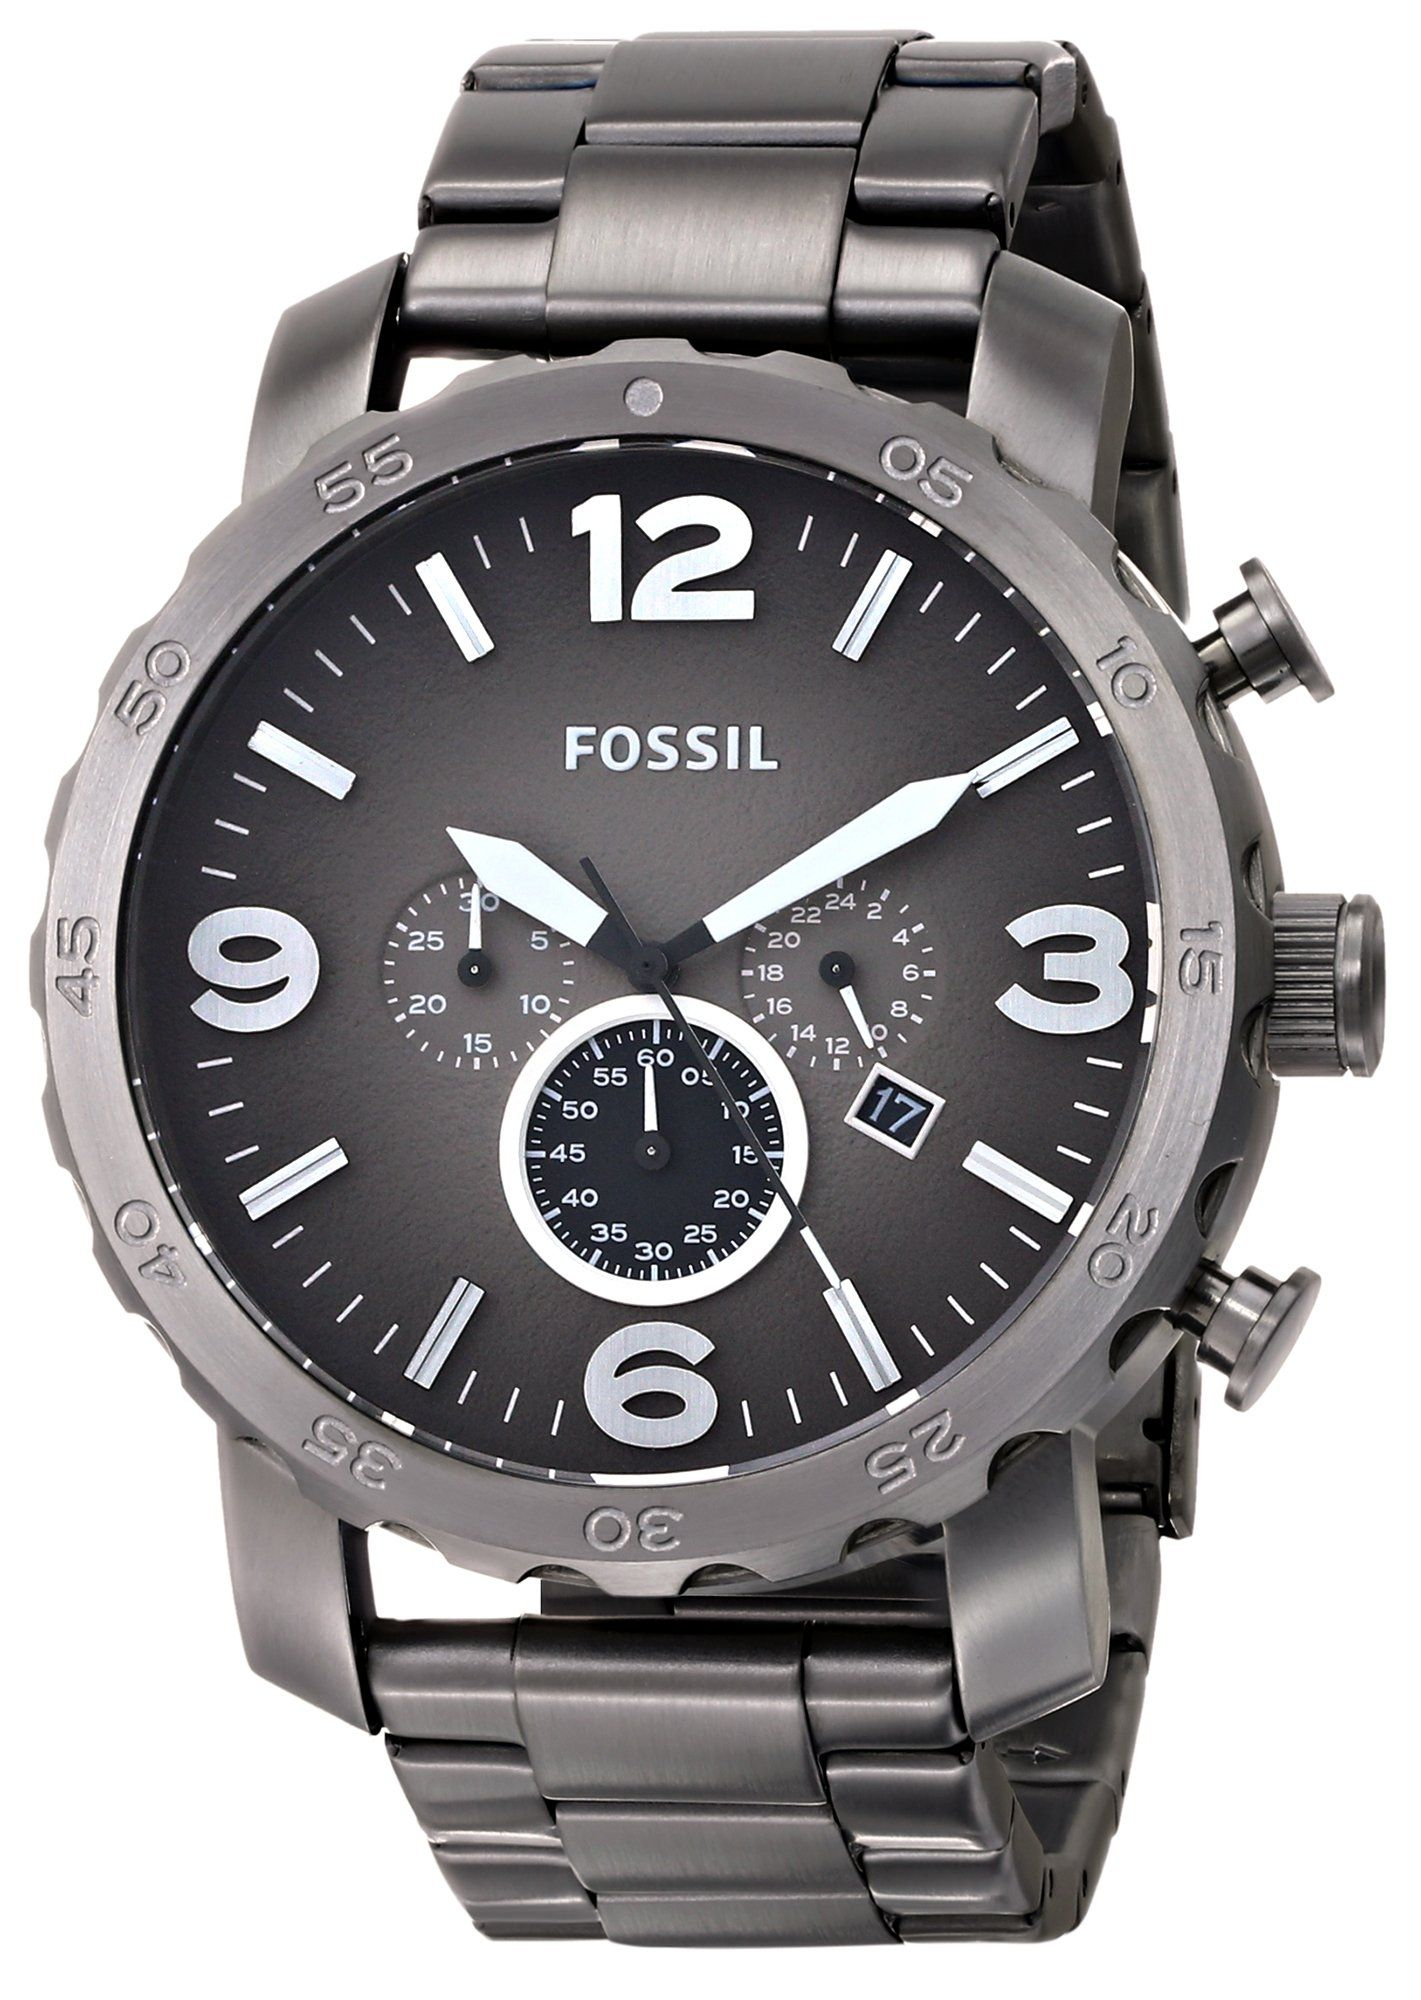 6fd40312aa40 Amazon.com  Fossil Men s JR1437 Nate Chronograph Smoke Stainless Steel Watch   Fossil Watches  Watches